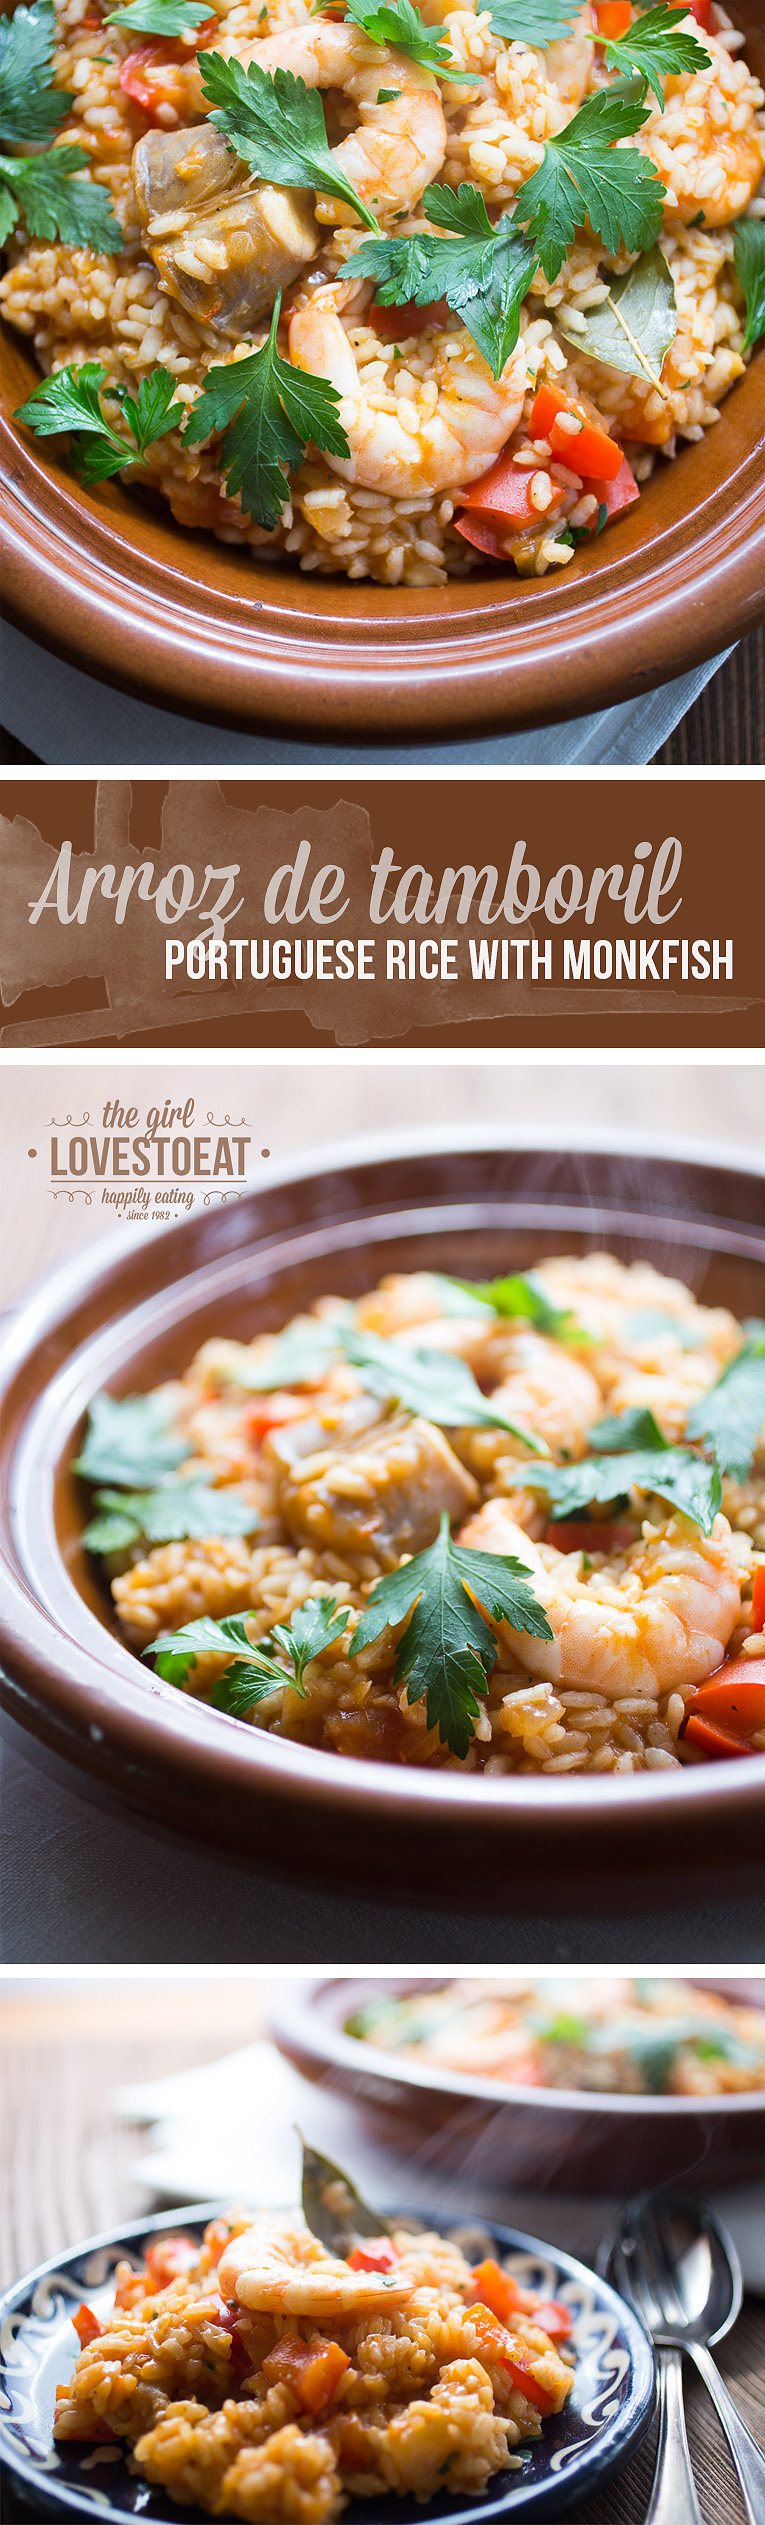 Arroz de tamboril - Portuguese rice with monkfish